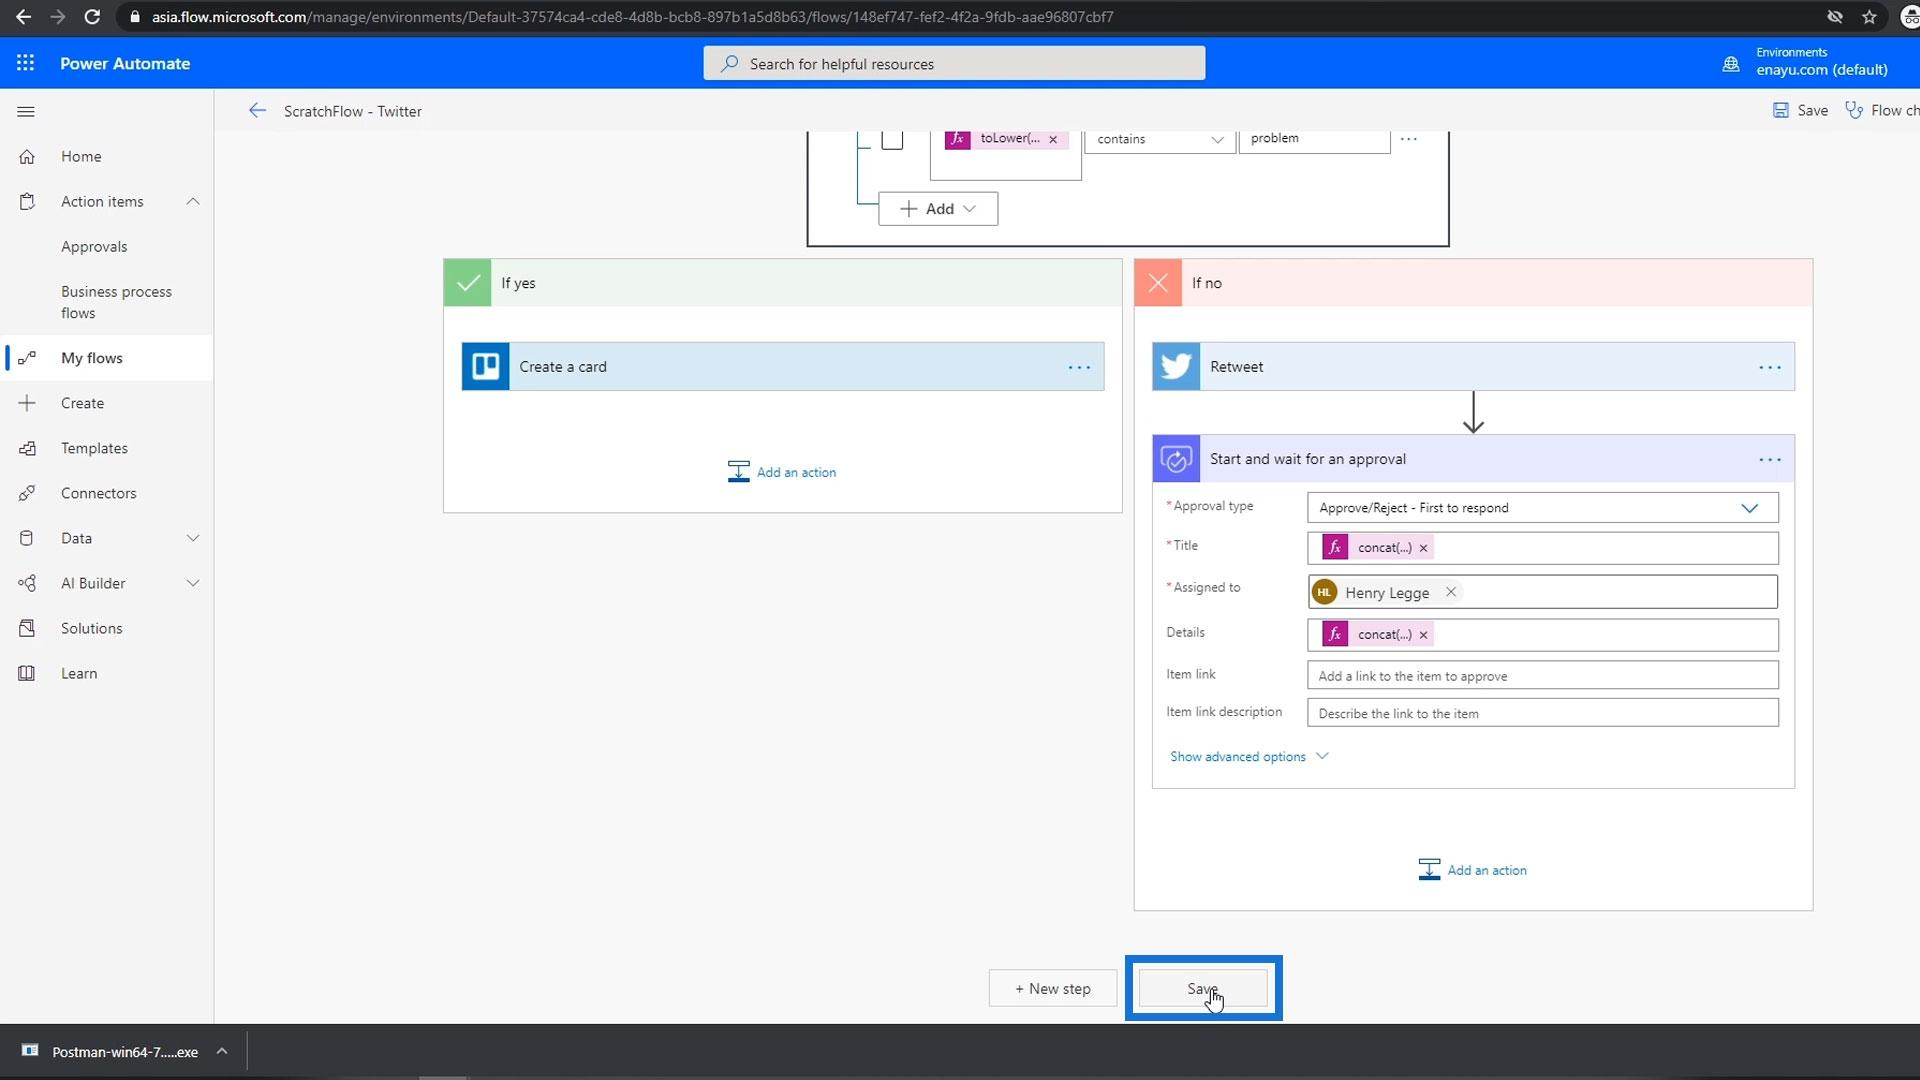 Approval Workflow In Power Automate